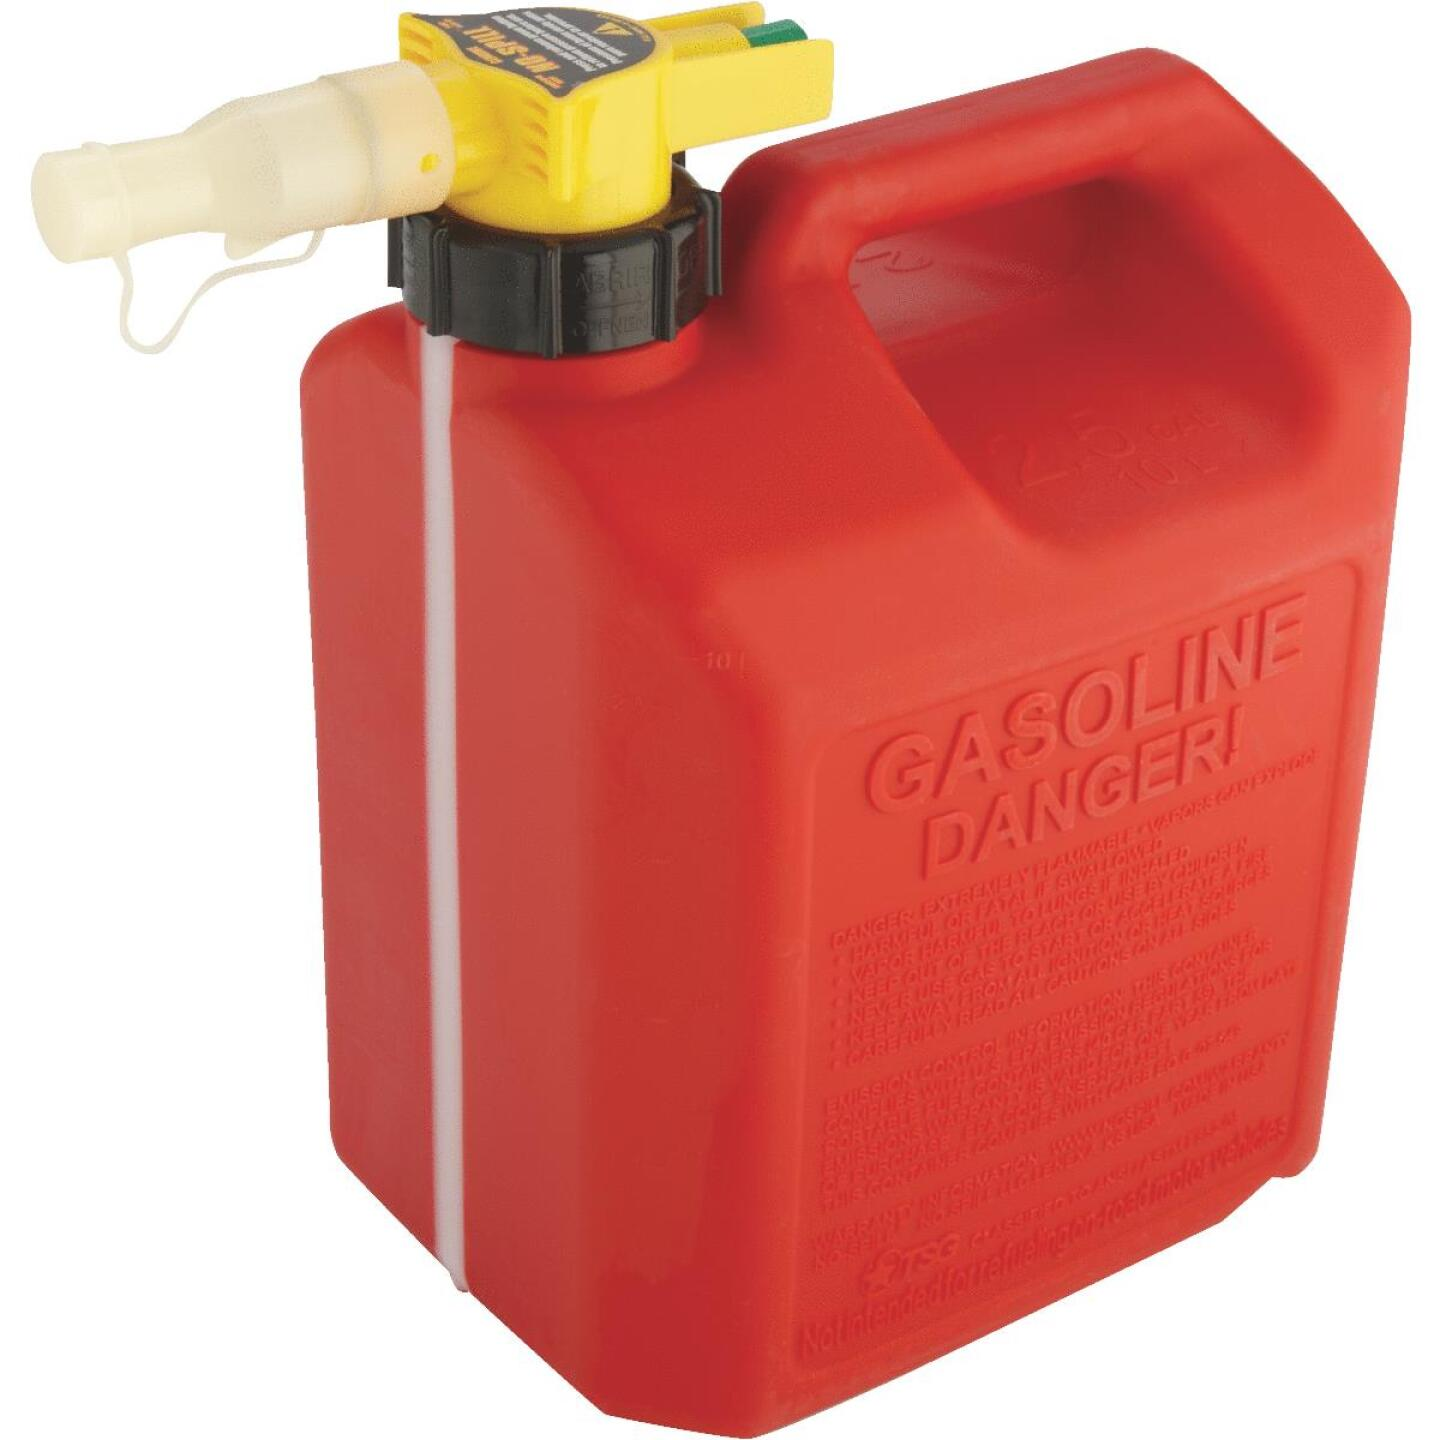 No-Spill 2-1/2 Gal. Plastic Gasoline Fuel Can, Red Image 3